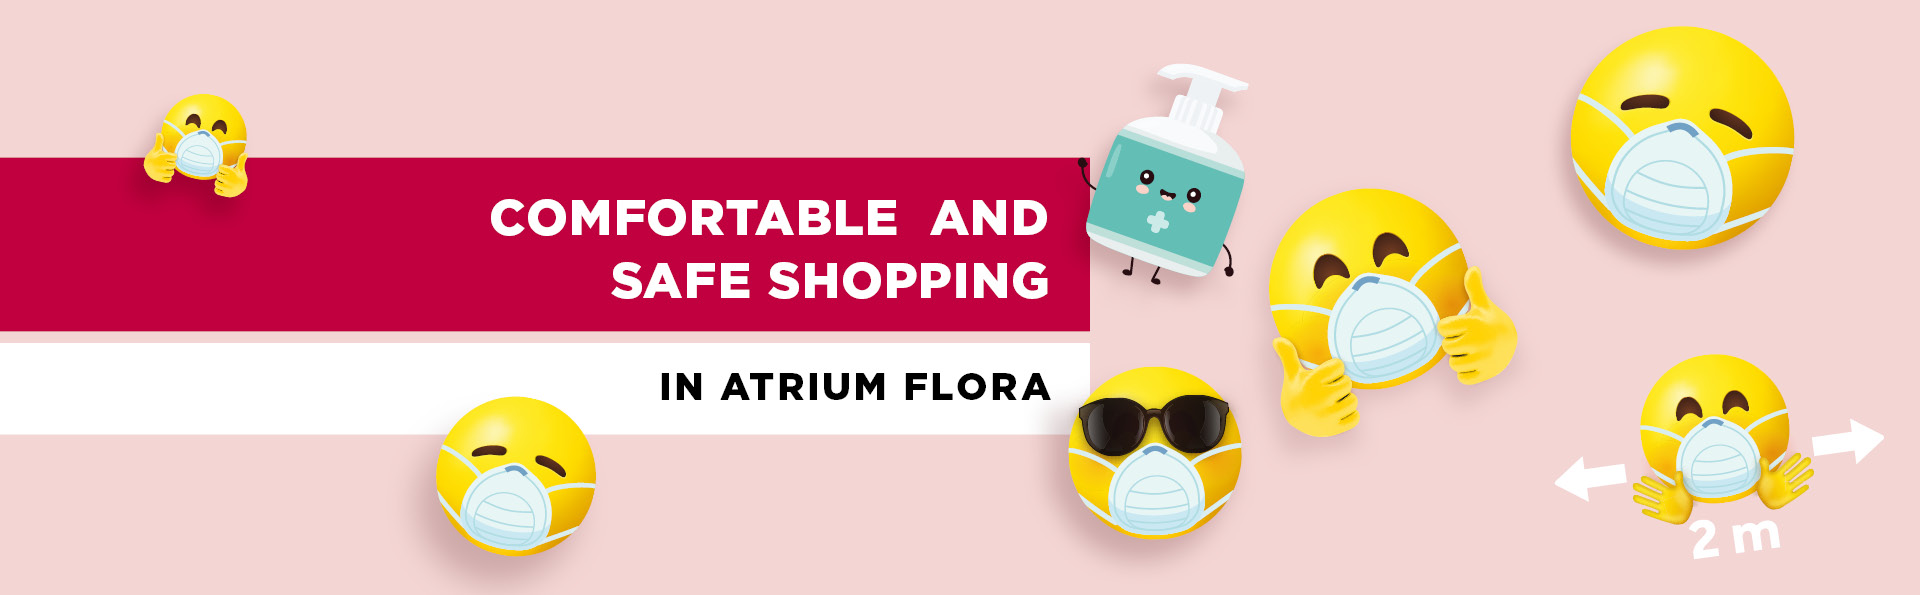 Comfortable and Safe Shopping